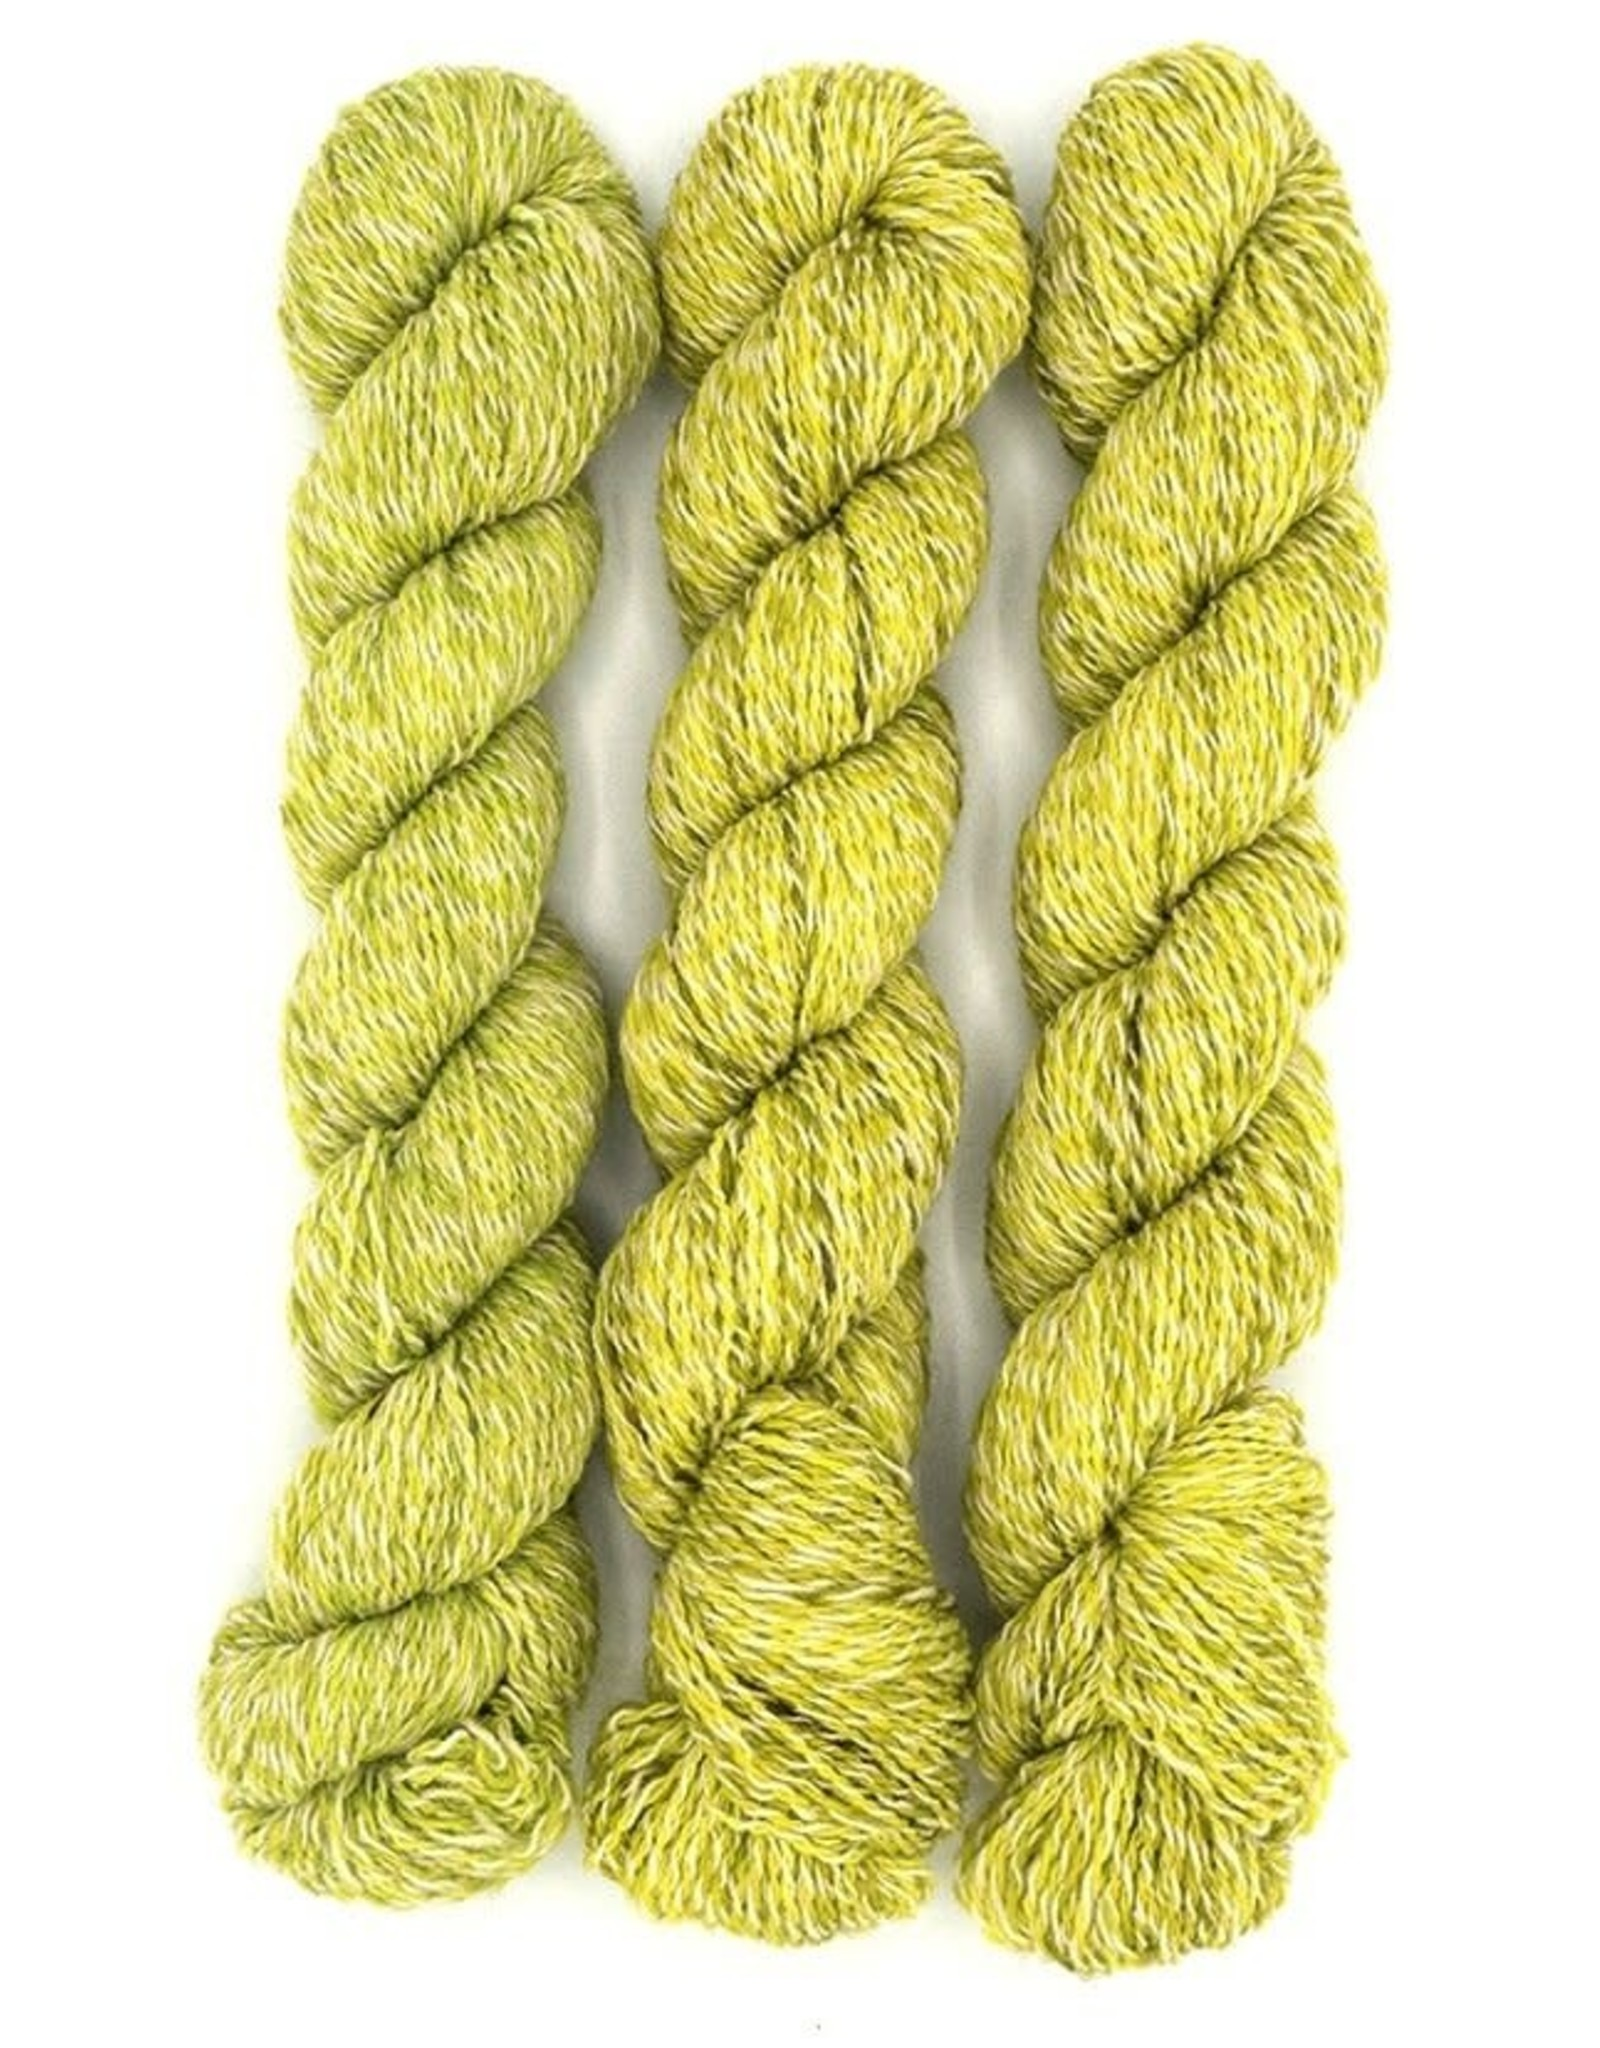 Plied Yarns Sauerkraut at Thanksgiving - North Ave - Plied Yarns